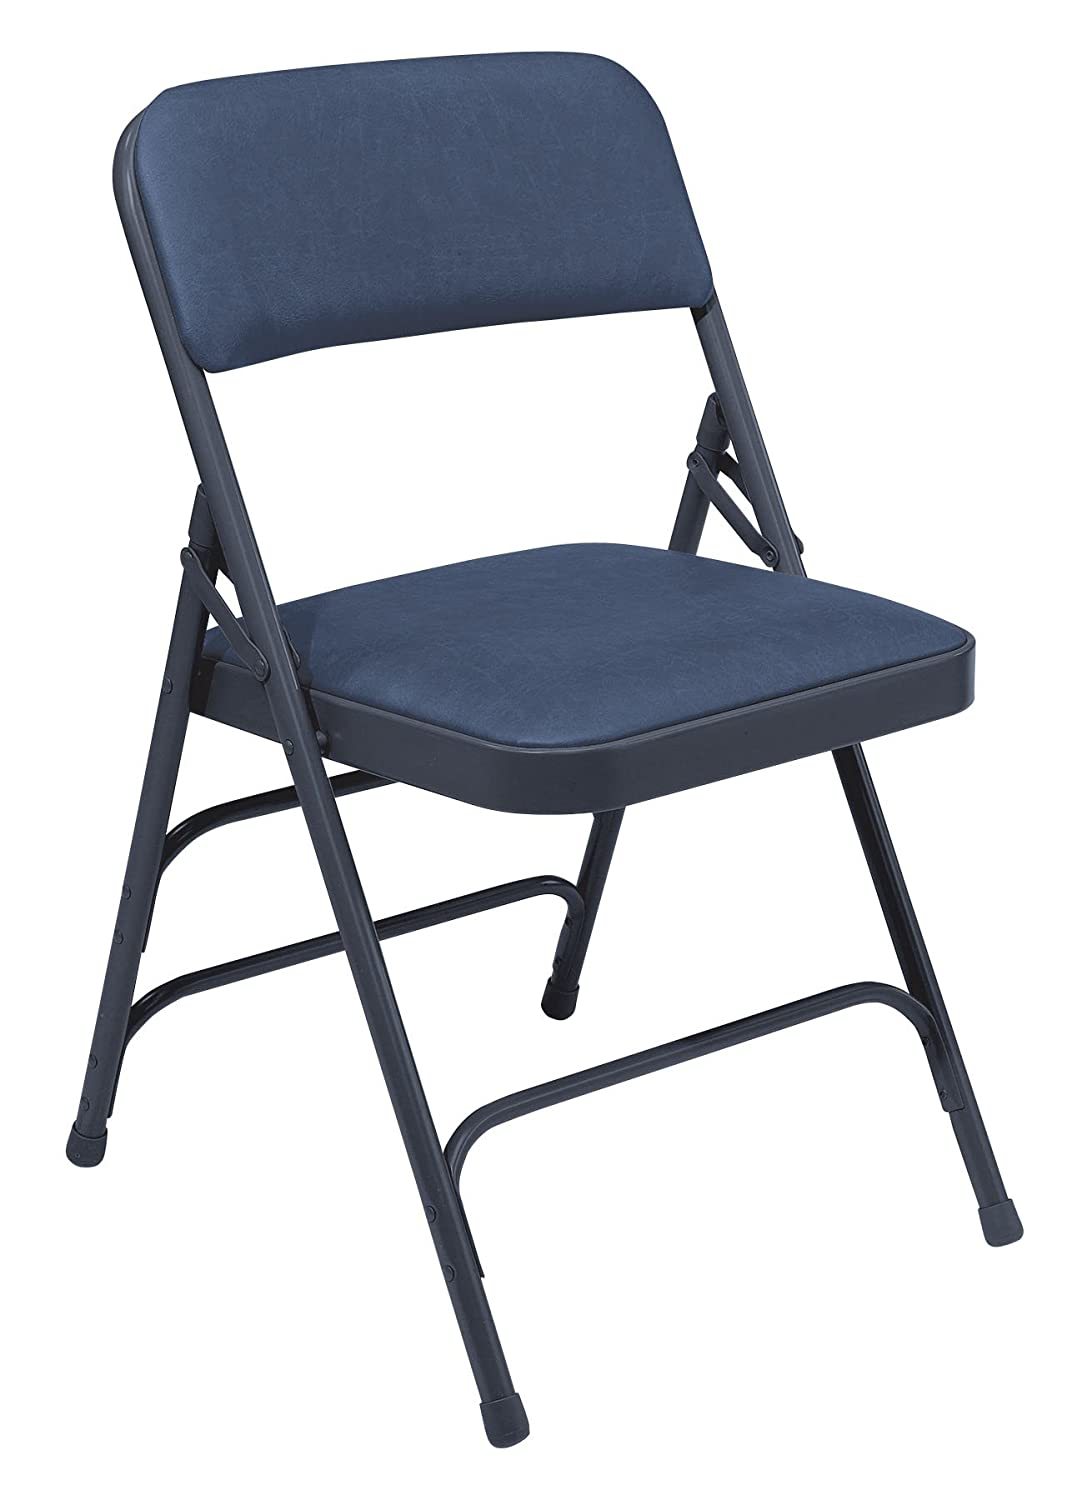 Amazon.com: National Public Seating 1300 Series Steel Frame Upholstered  Premium Vinyl Seat And Back Folding Chair With Triple Brace, 480 Lbs  Capacity, ...